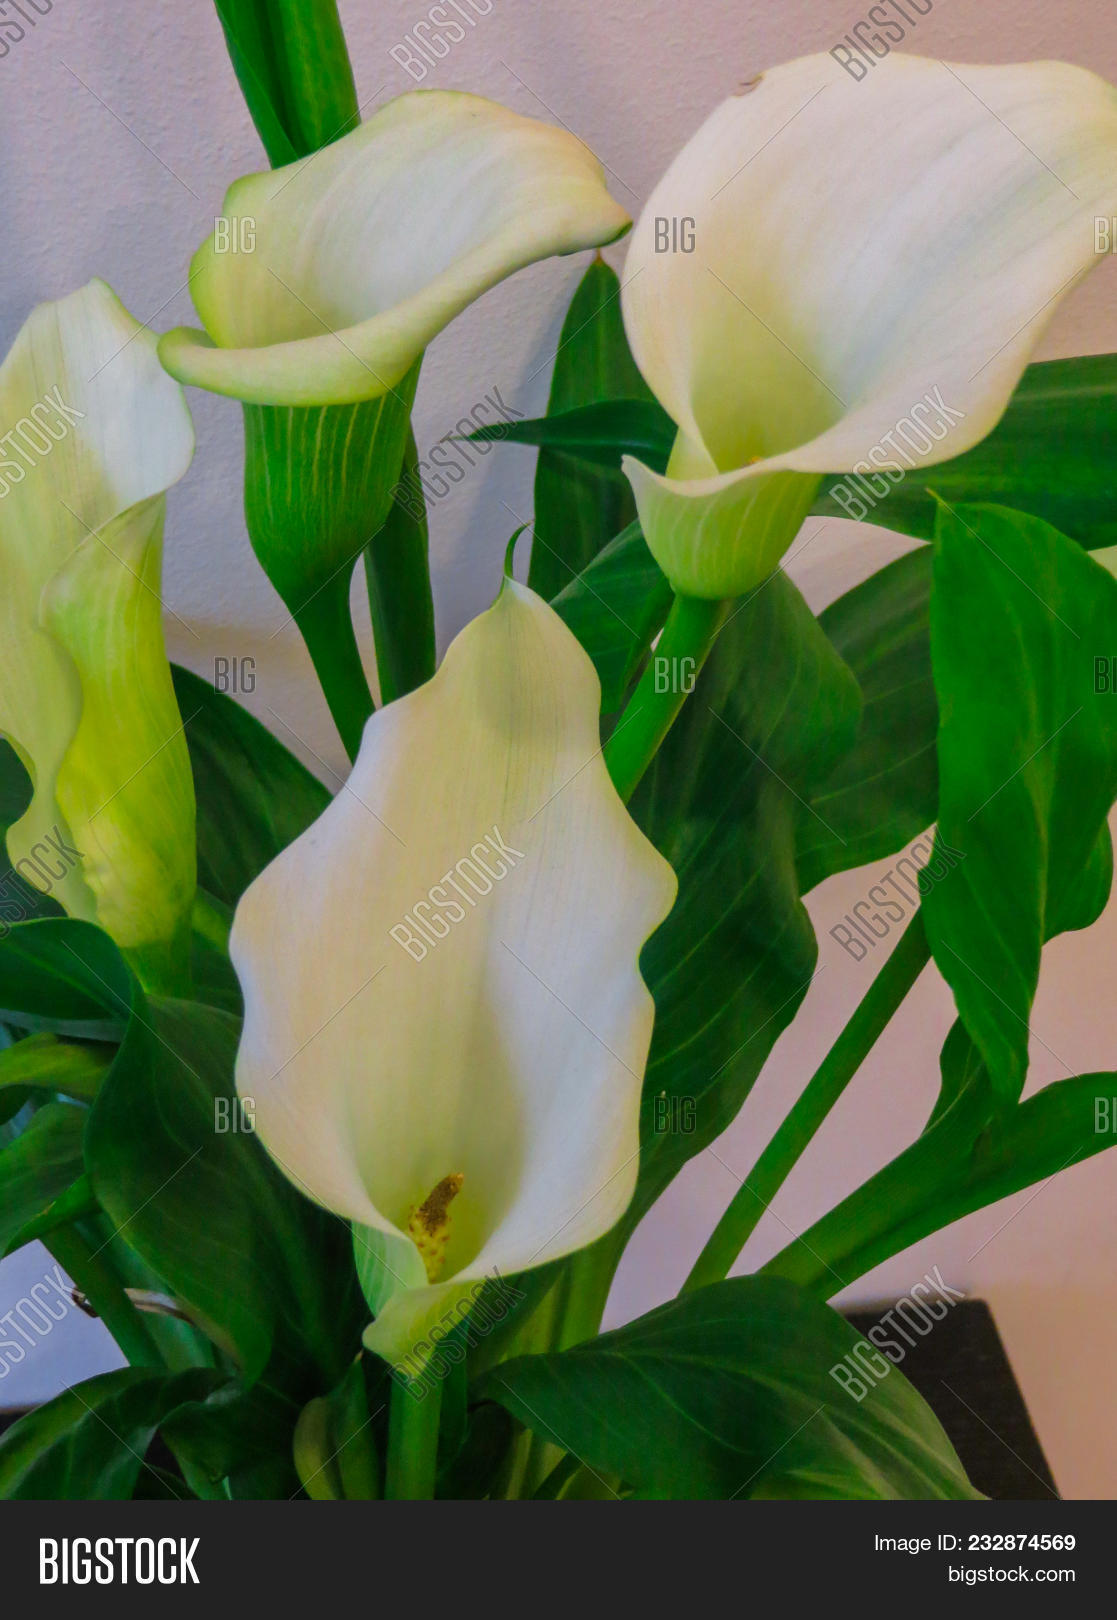 Calla lilies flowers image photo free trial bigstock calla lilies flowerswhite calla cultivated in a flower pot izmirmasajfo